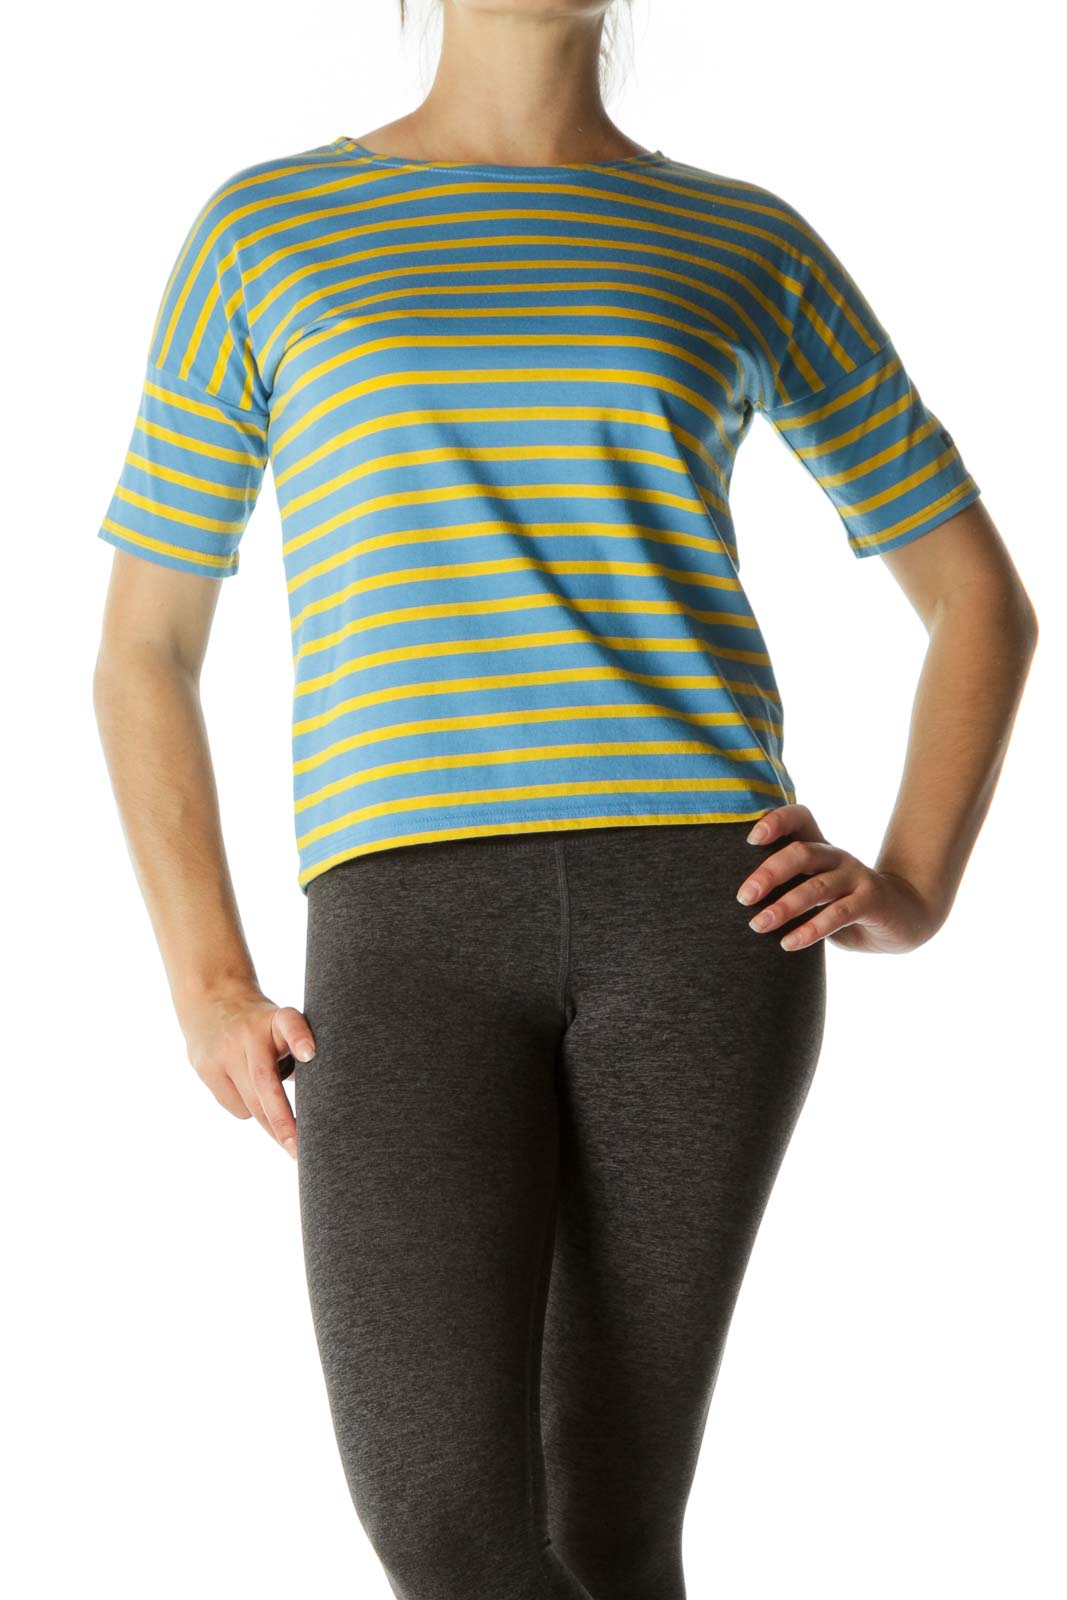 Blue Yellow 100% Cotton Short Sleeve Stretch Top